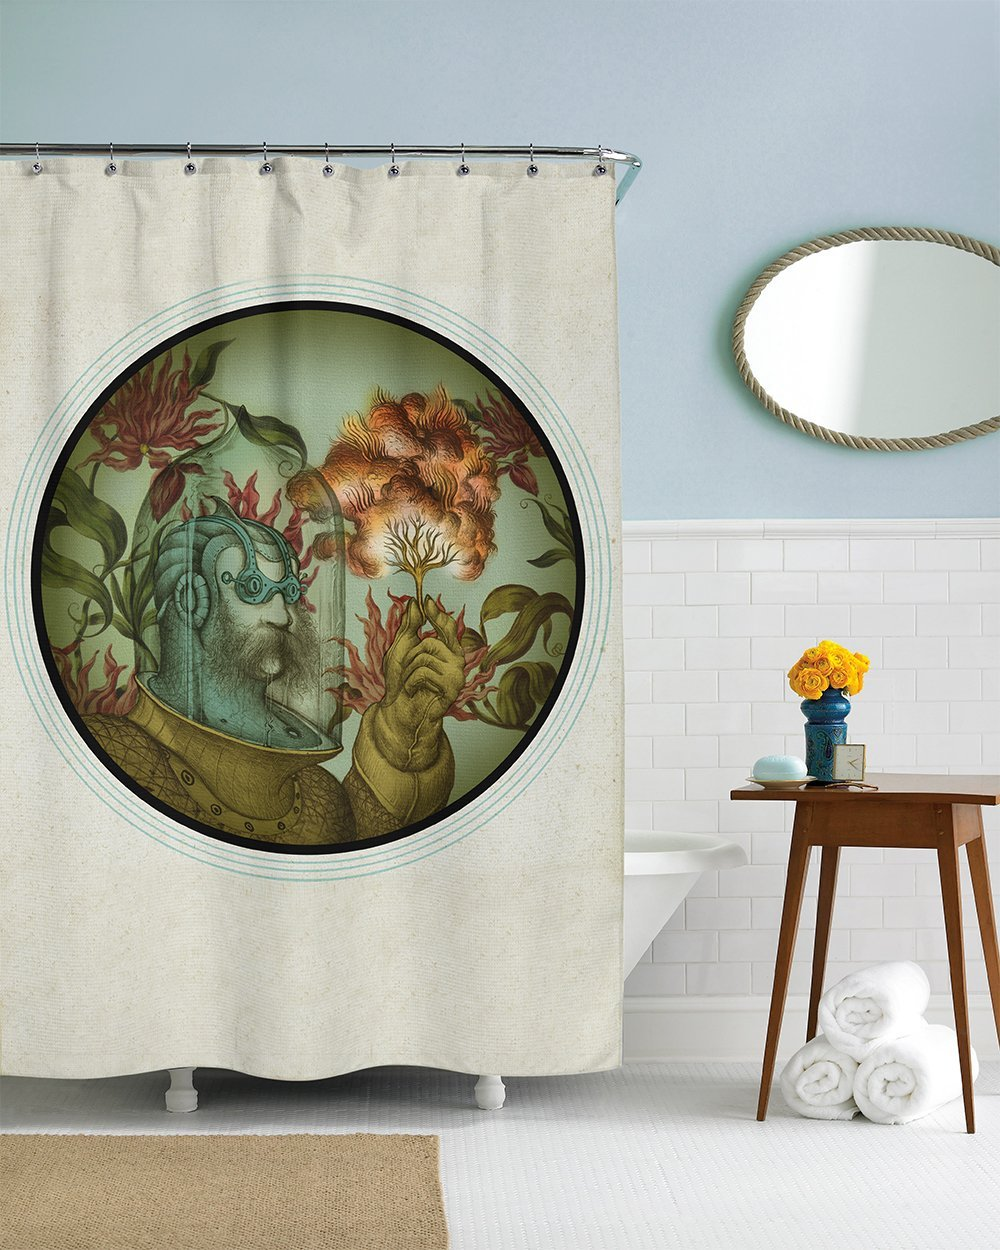 Vintage custom waterproof fashion shower curtain 60 x 72 for 60s bathroom decor